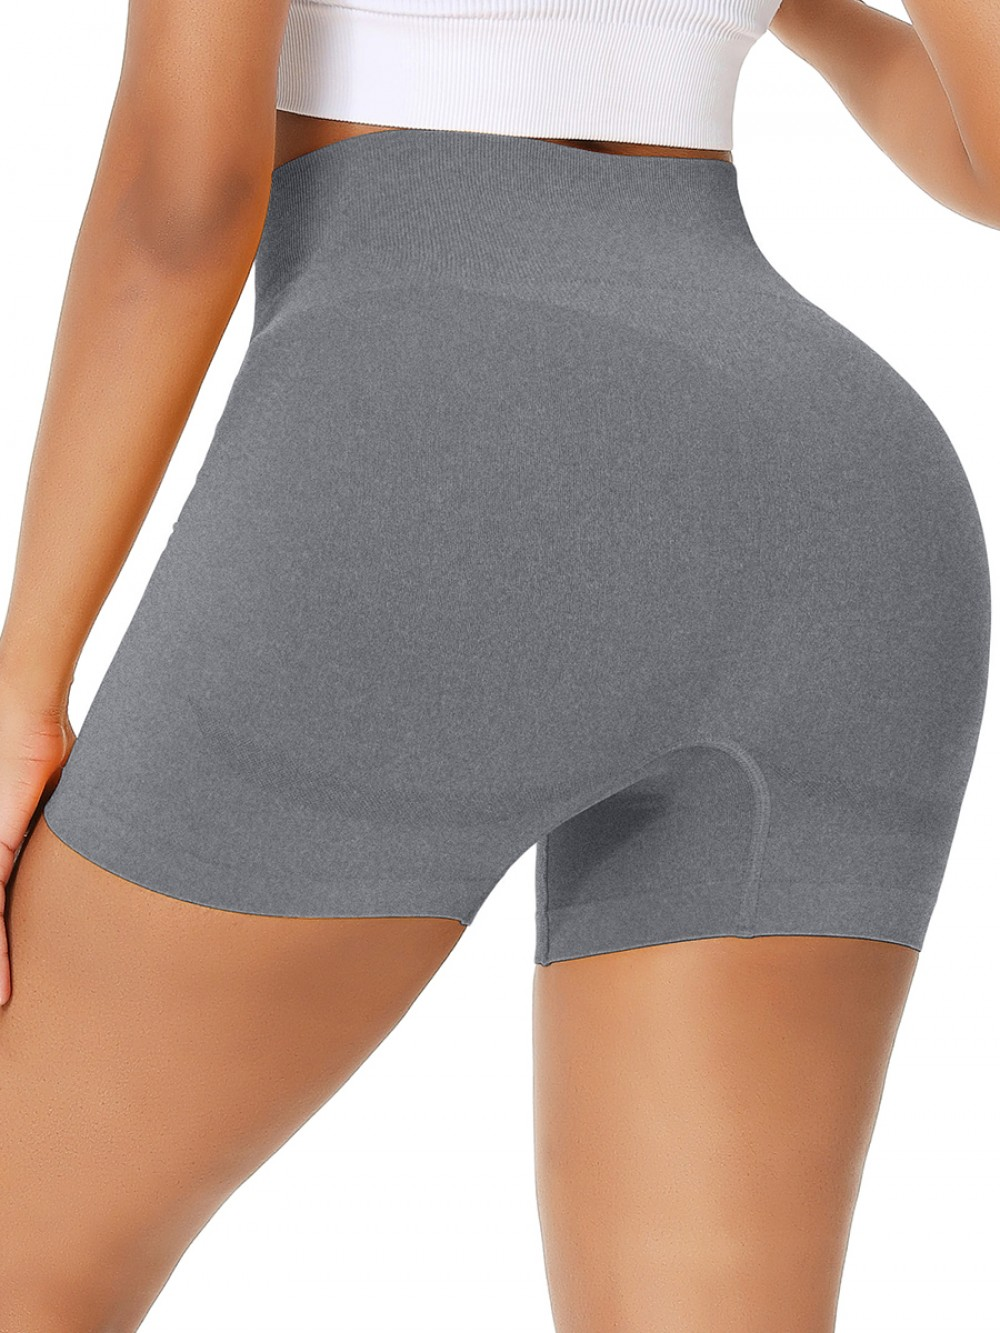 Energetic Gray Wide Waistband Seamless Running Shorts Refined Outfit